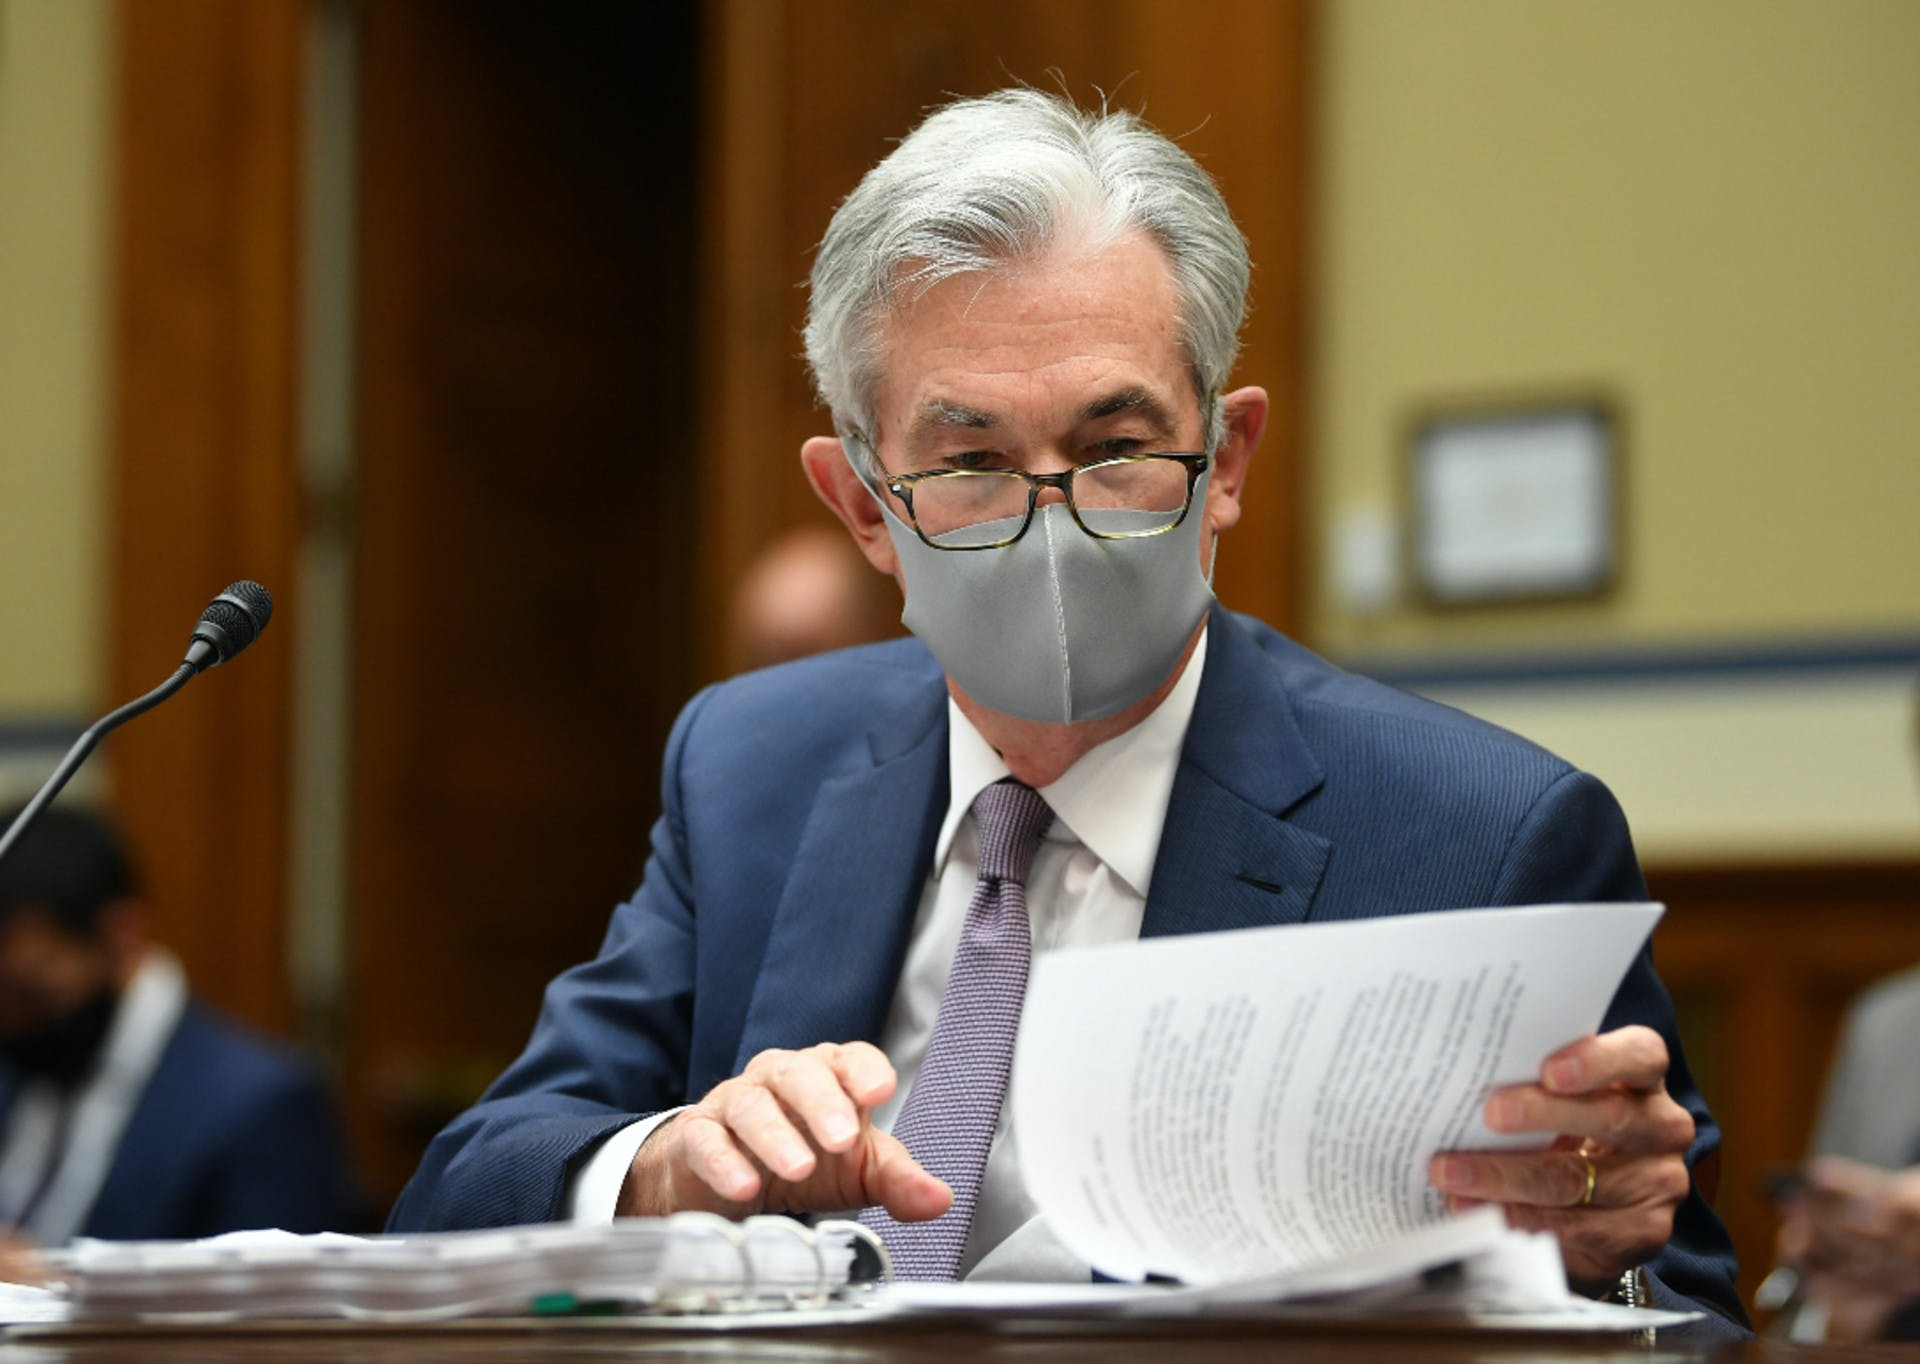 Federal Reserve Chair Jerome Powell prepares to testify before the Select Subcommittee on the Coronavirus Crisis on the Federal Reserves.